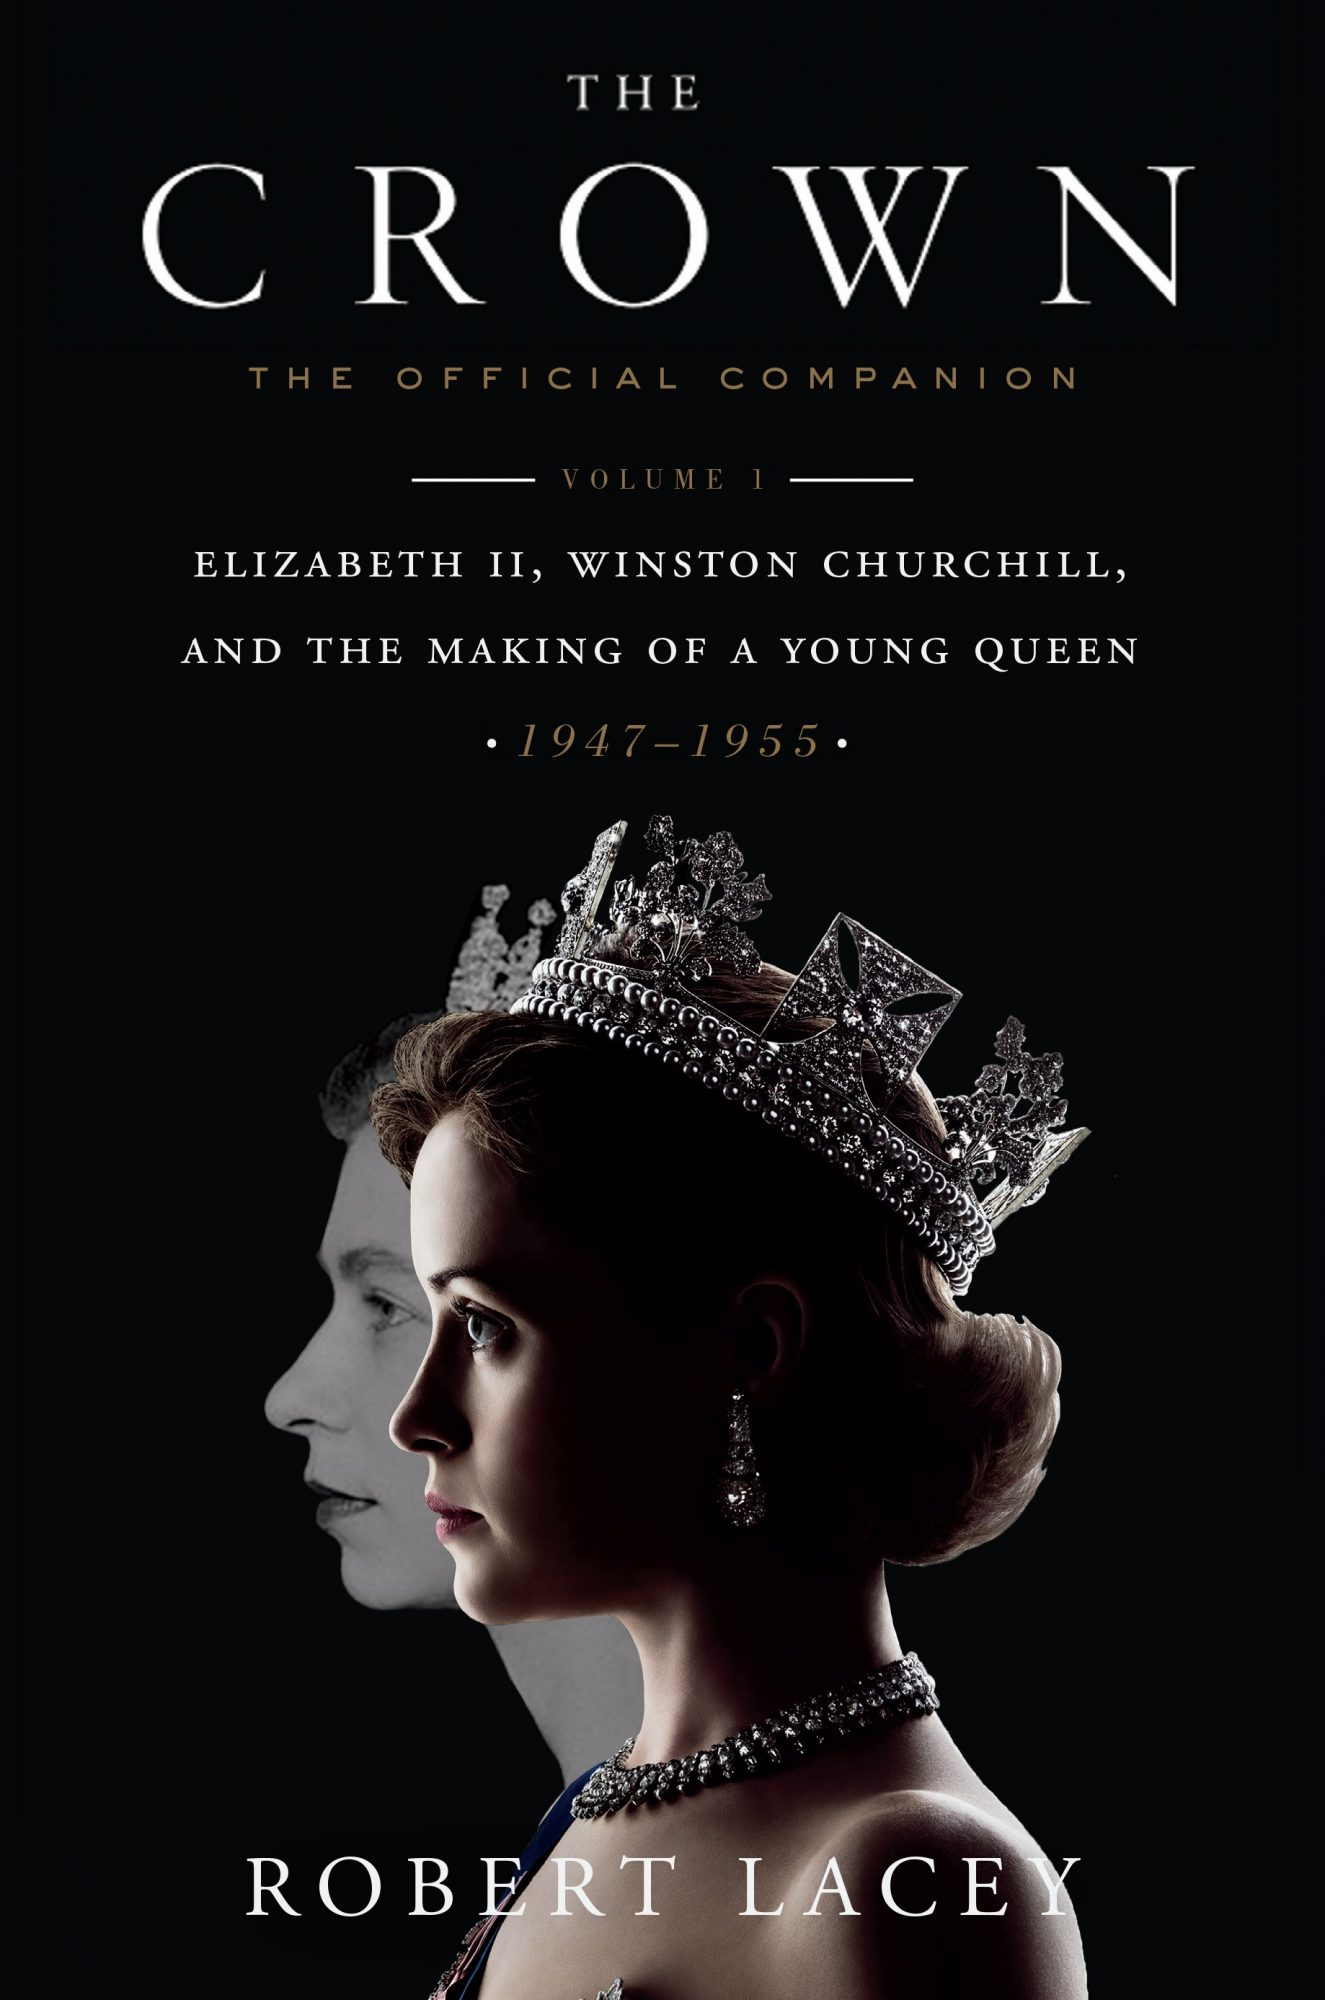 THE CROWN Book Jacket